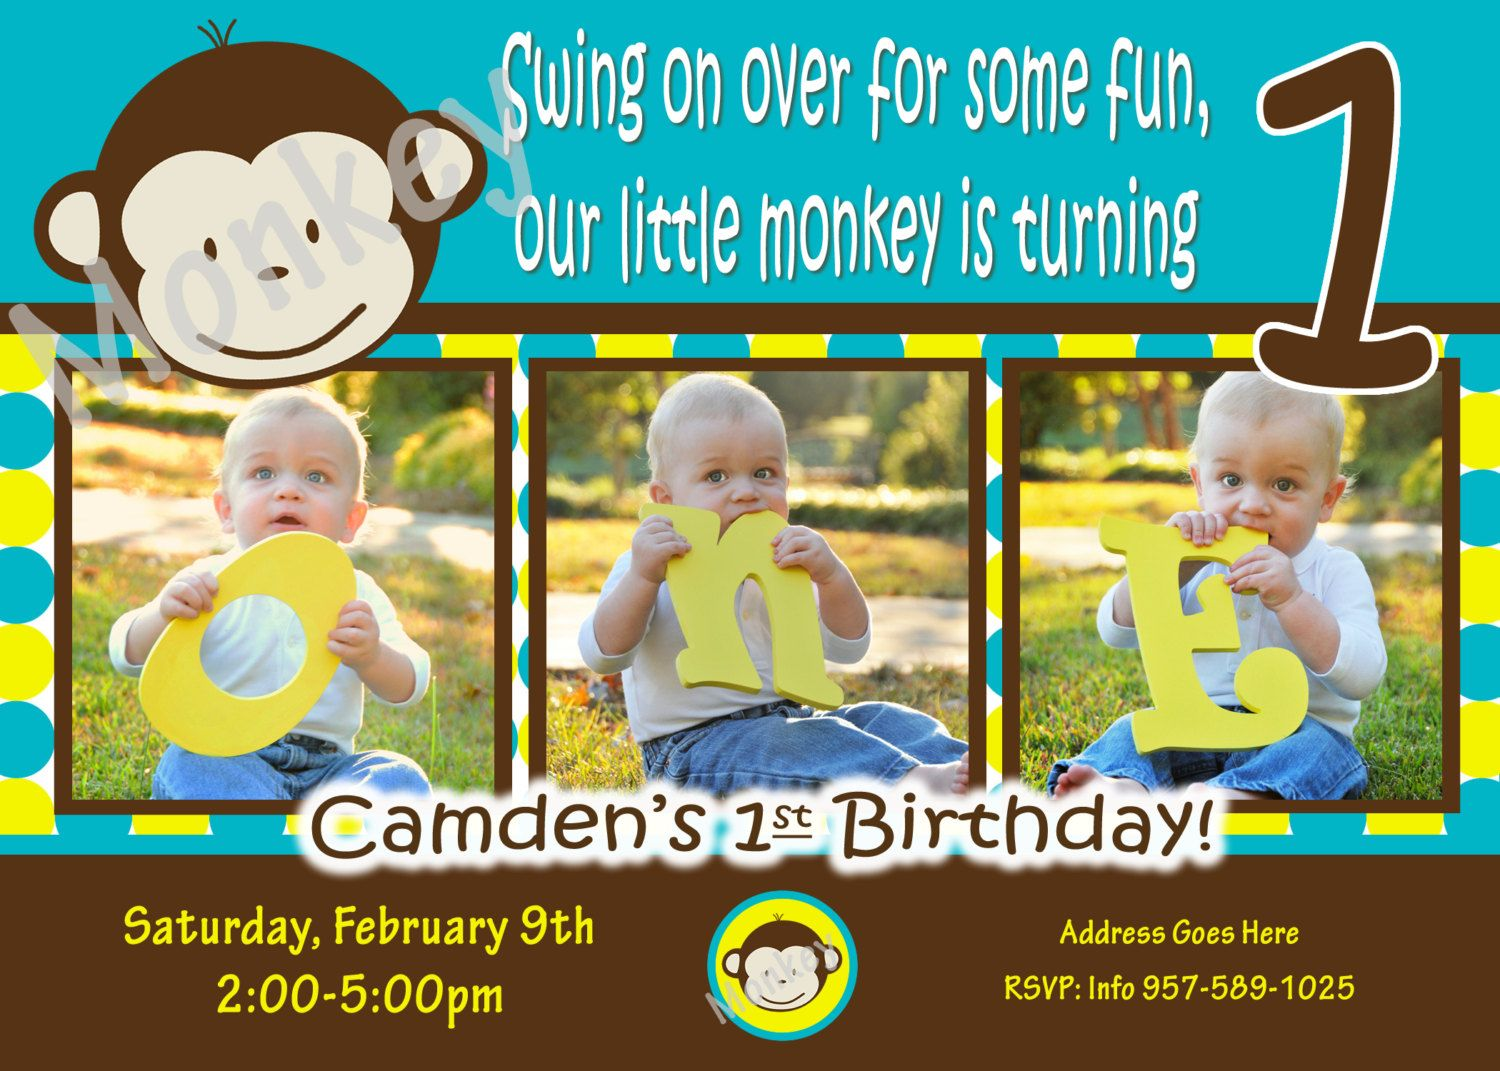 Mod monkey invitation mod monkey invite photo 1st birthday party mod monkey invitation mod monkey invite photo 1st birthday party boy pictures invite 1 year old 1st birthday invitation boy 1 year invite stopboris